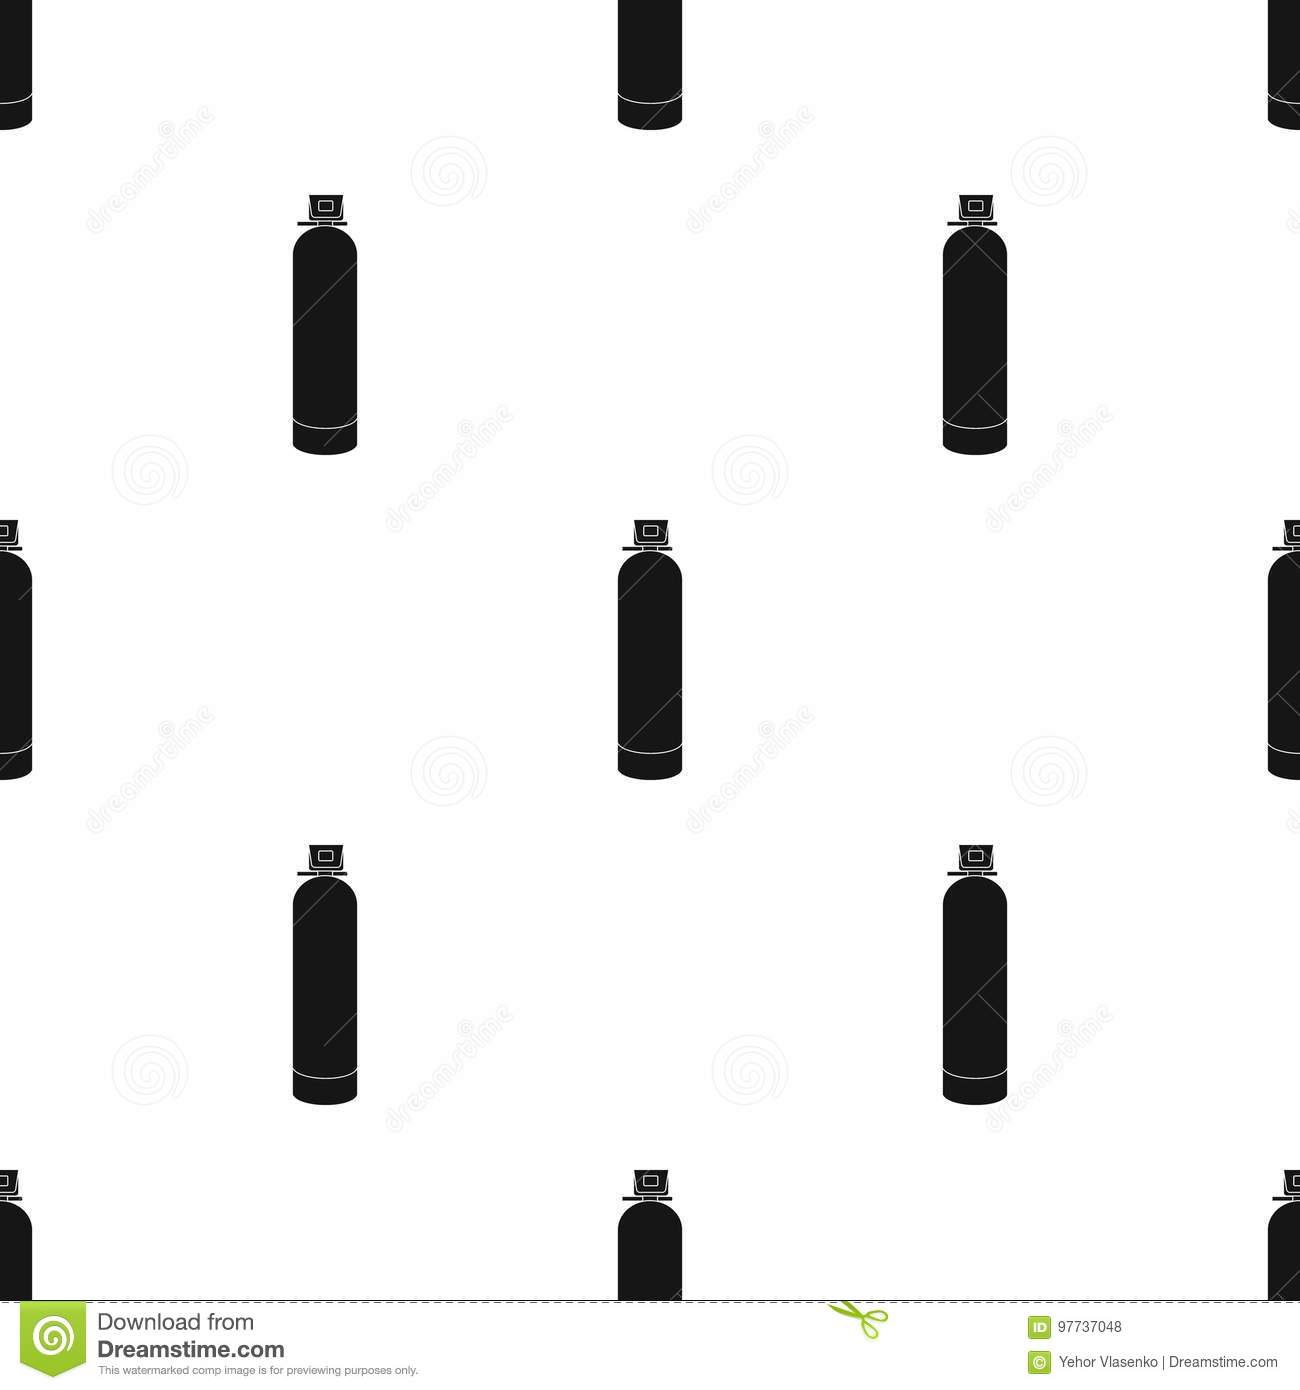 Water Filter Machine Icon In Black Style Isolated On White